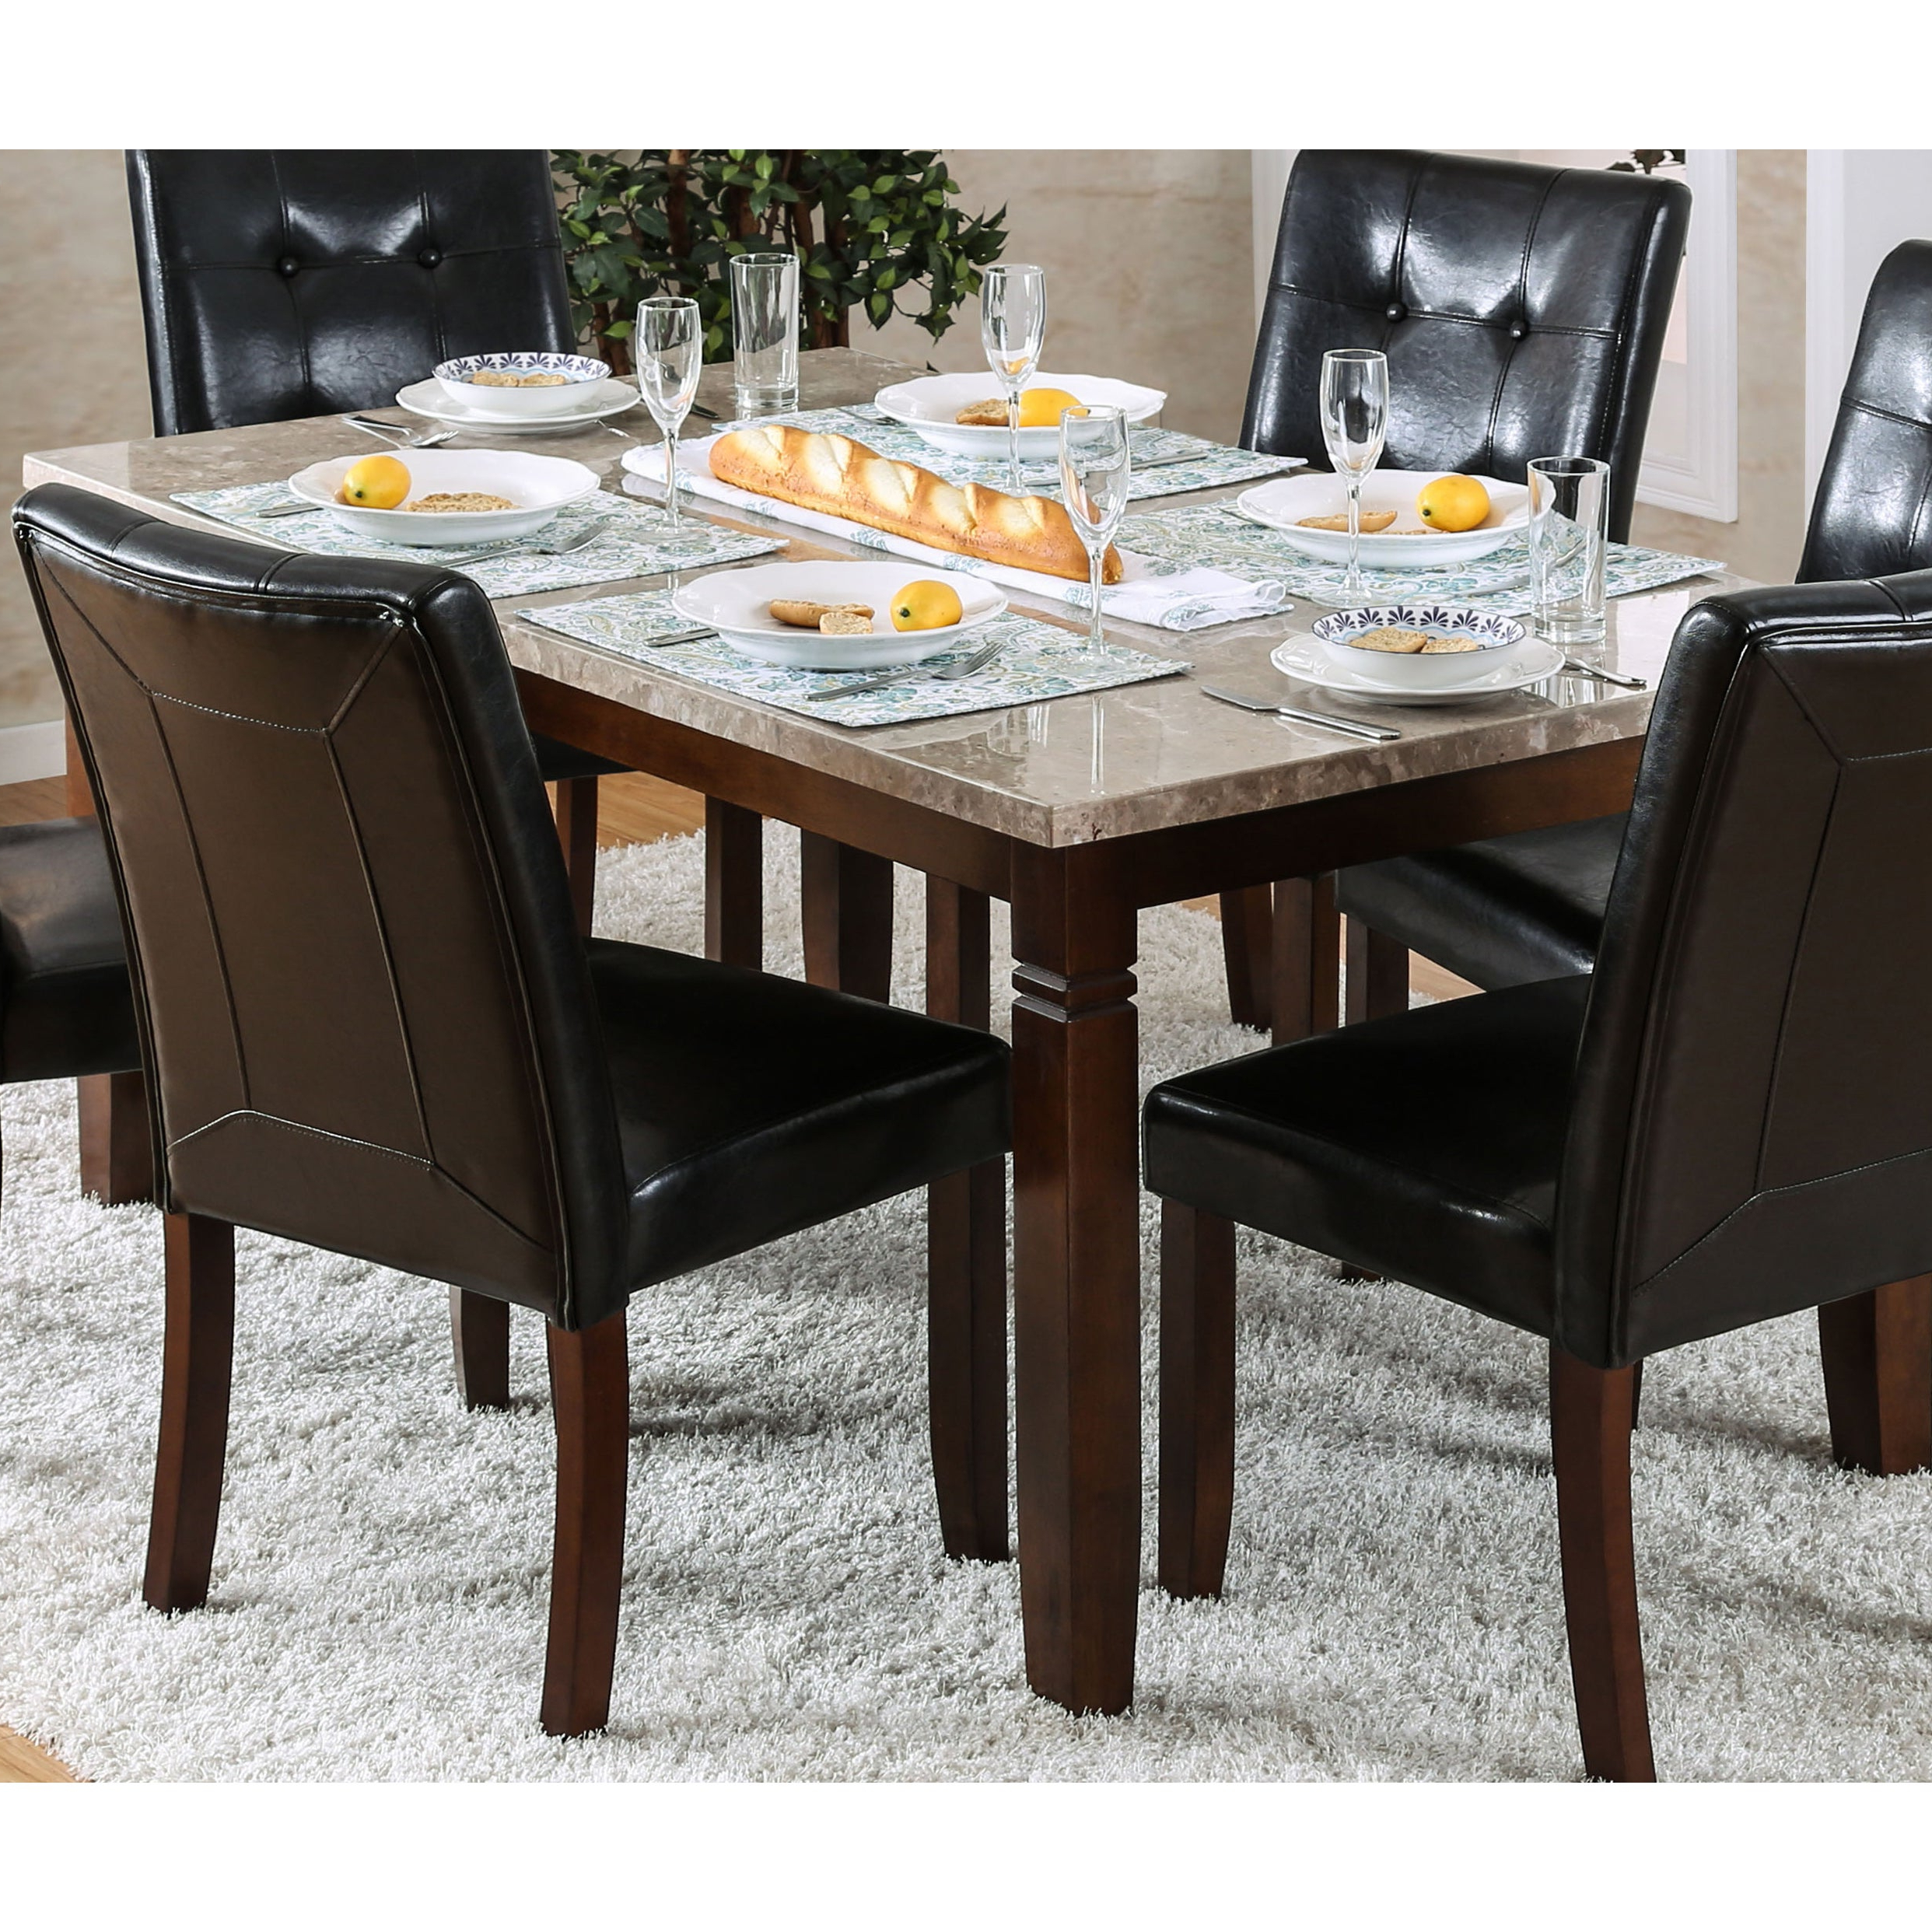 Our Best Pertaining To Popular North Reading 5 Piece Dining Table Sets (View 12 of 25)